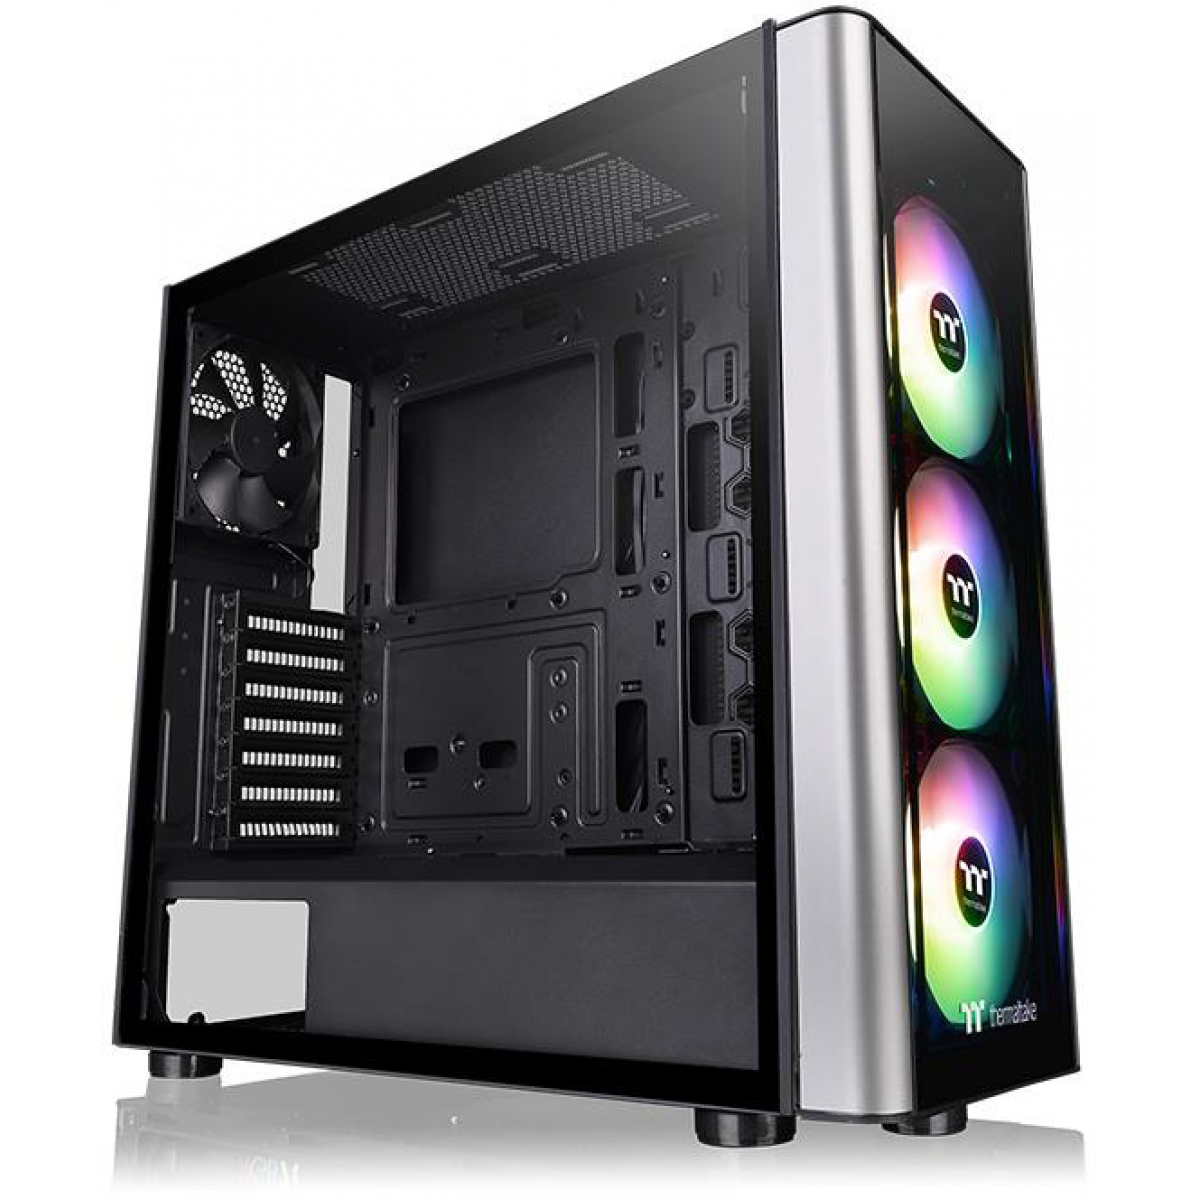 Gabinete Gamer Thermaltake Level 20 MT Argb, Mid Tower, Com 4 Fans, Vidro Temperado, Black, Sem Fonte, CA-1M7-00M1WN-00